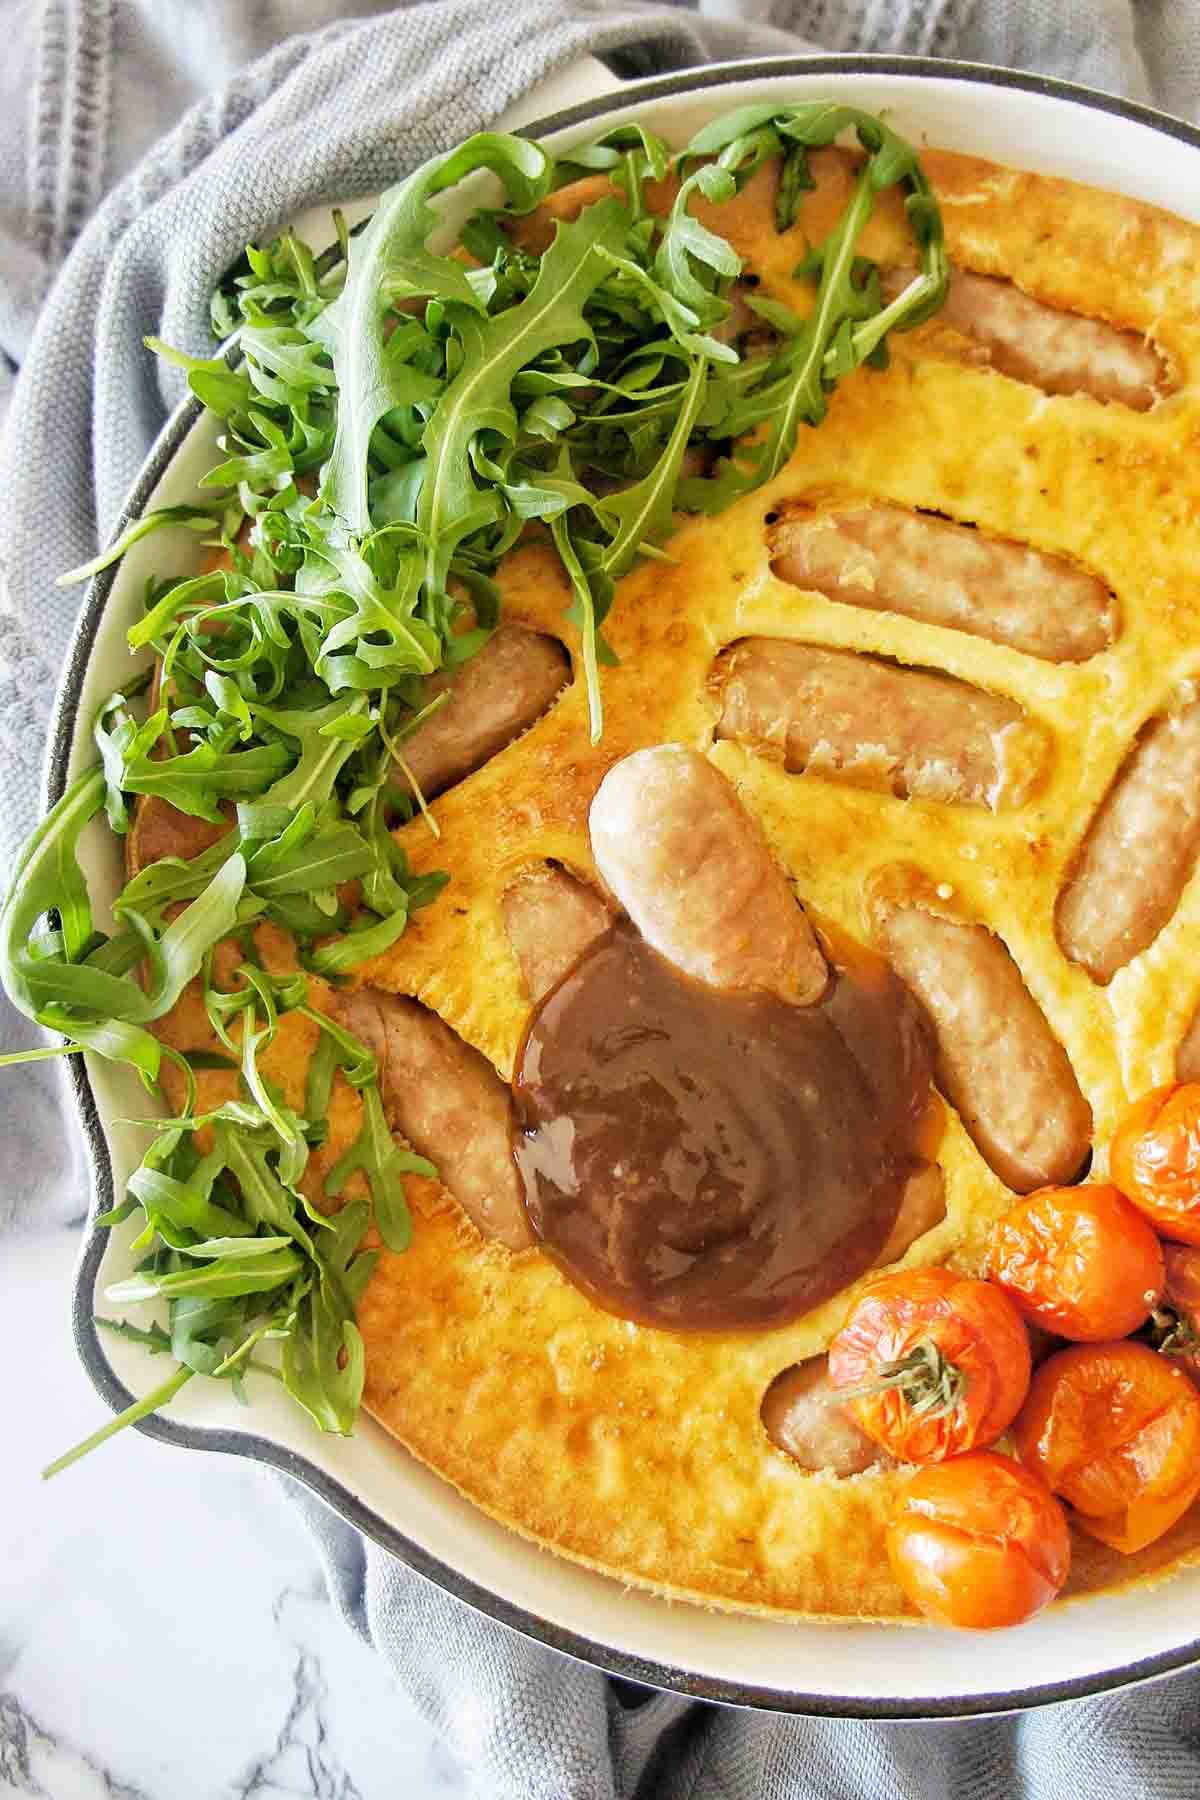 Pork Chipolata in pool of gravy pudding in a white skillet